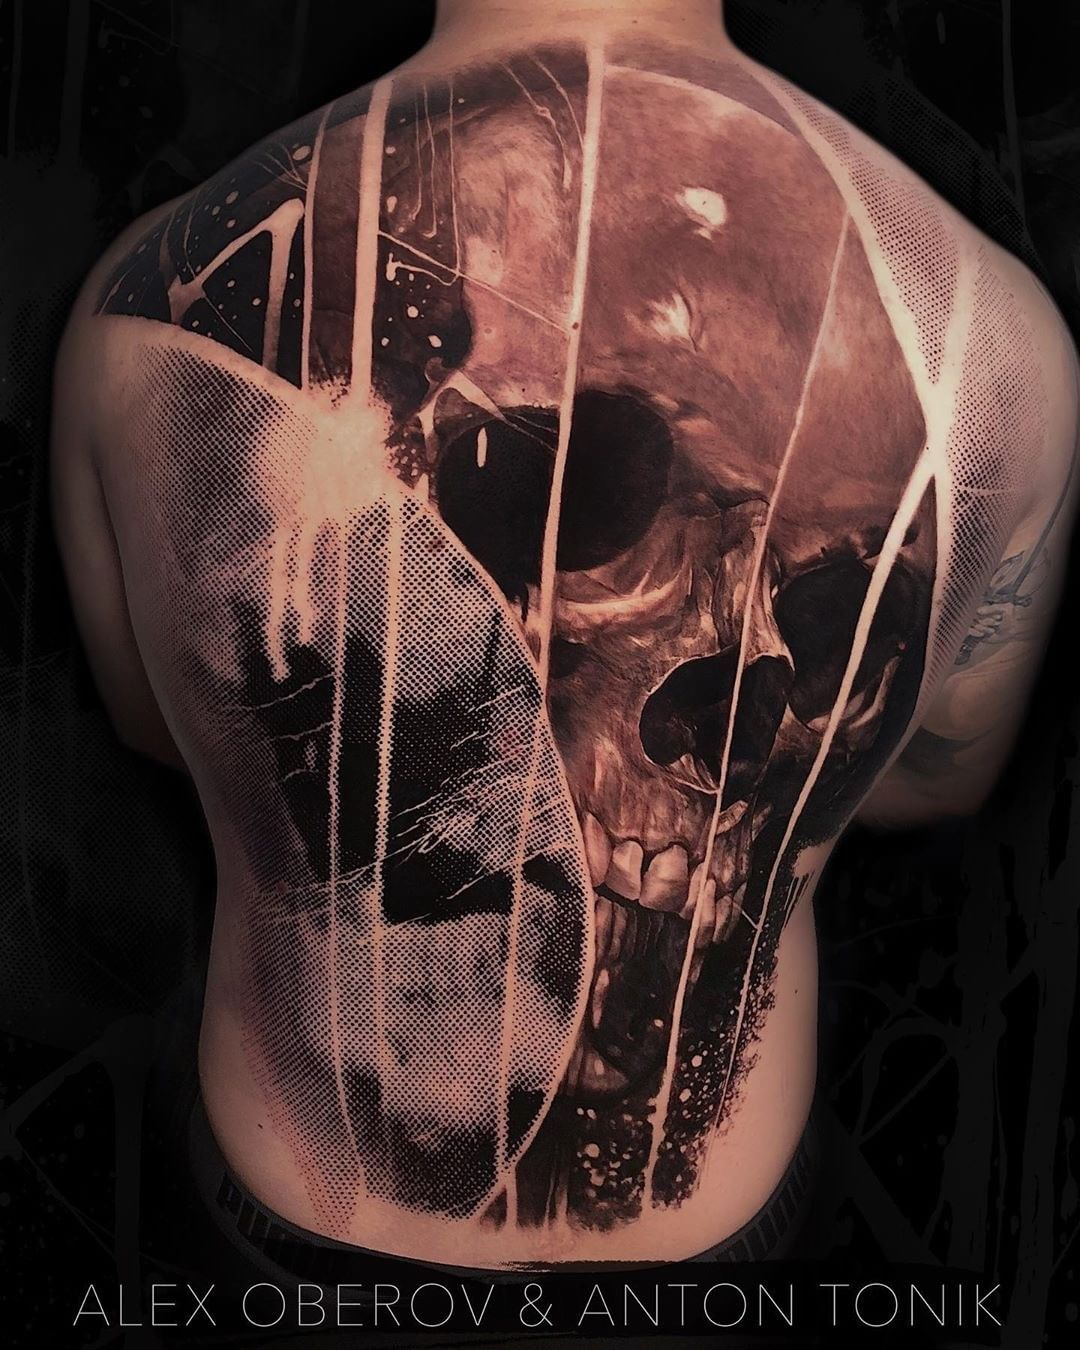 Black & Grey Tattoo Collaboration of a Skull by Alex Oberov &  Anton Tonik